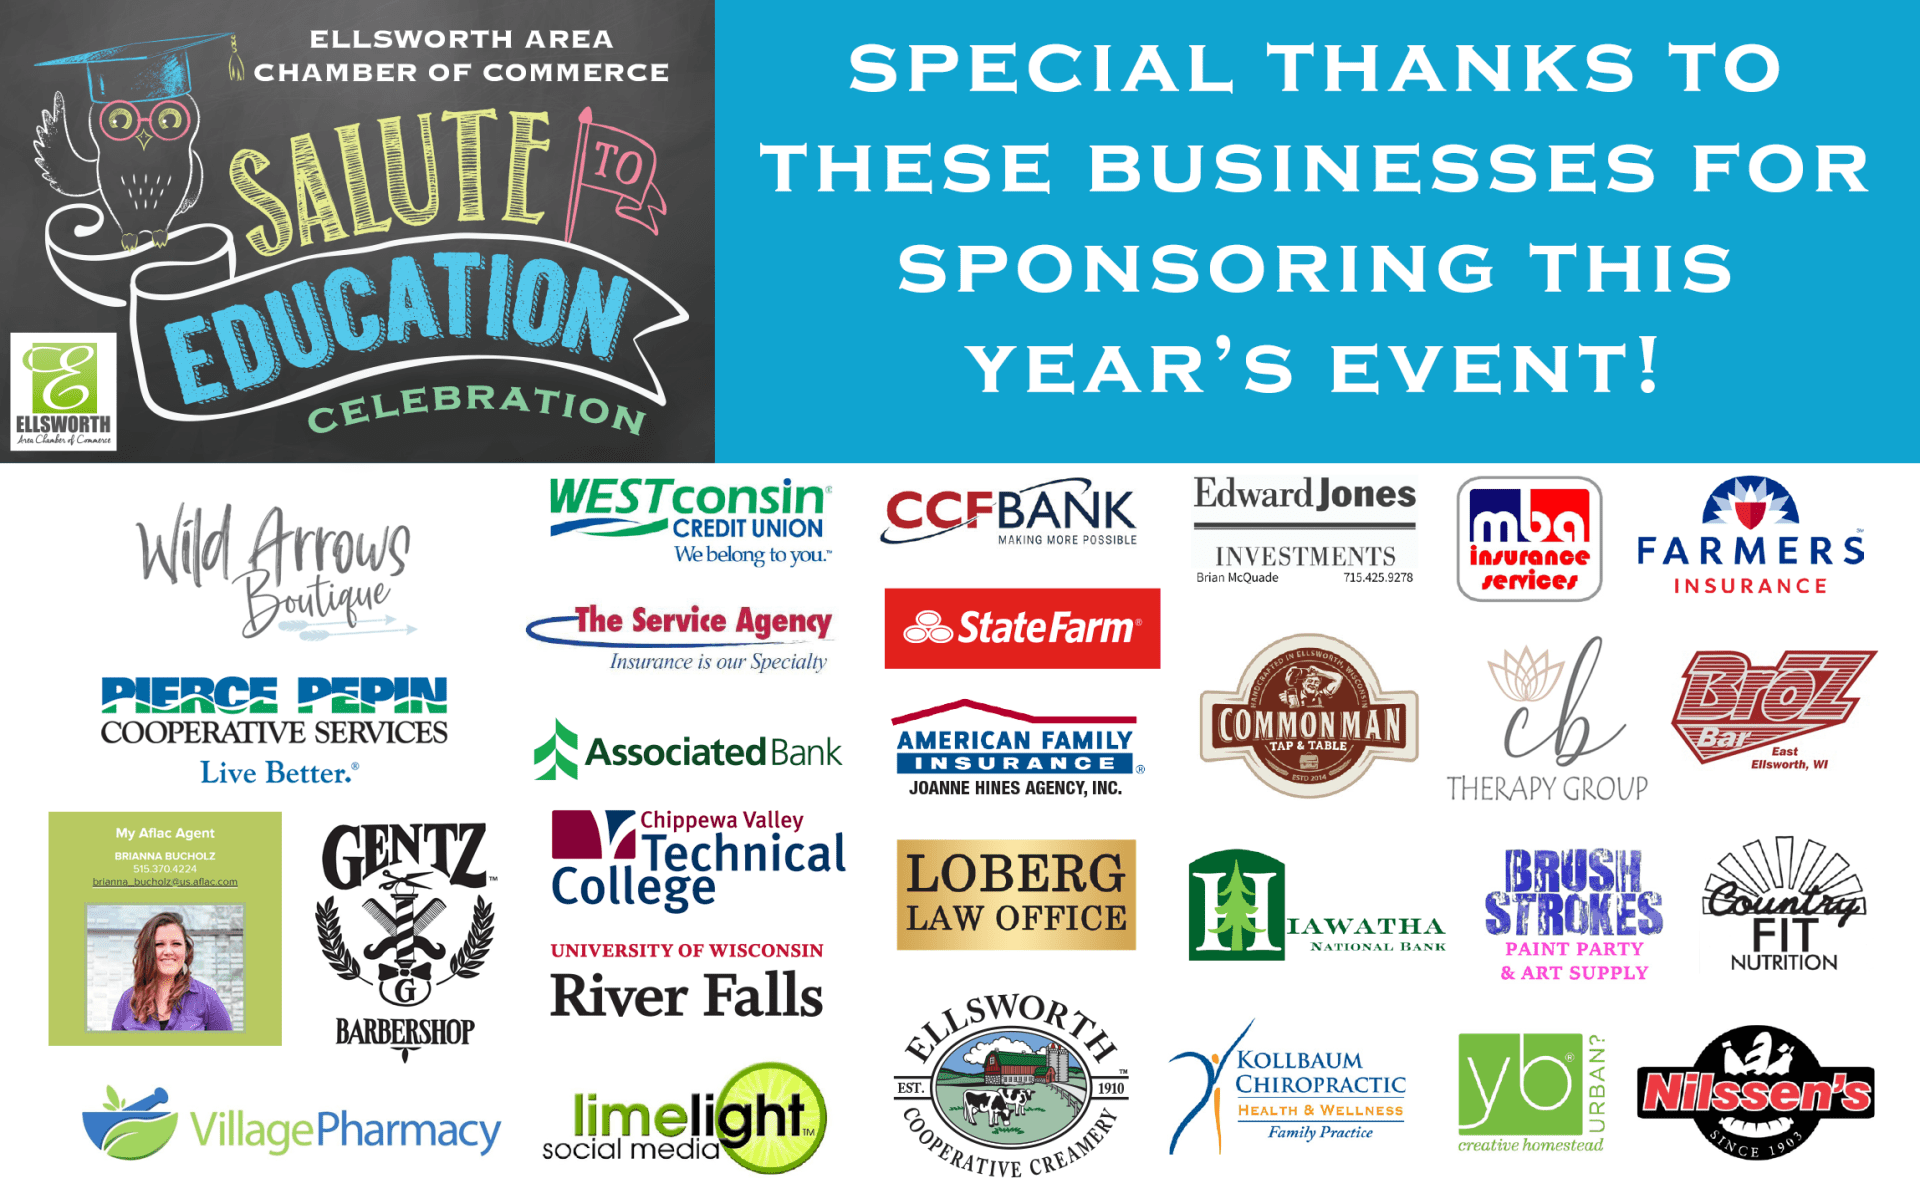 Thank You, Salute to Education Sponsors!